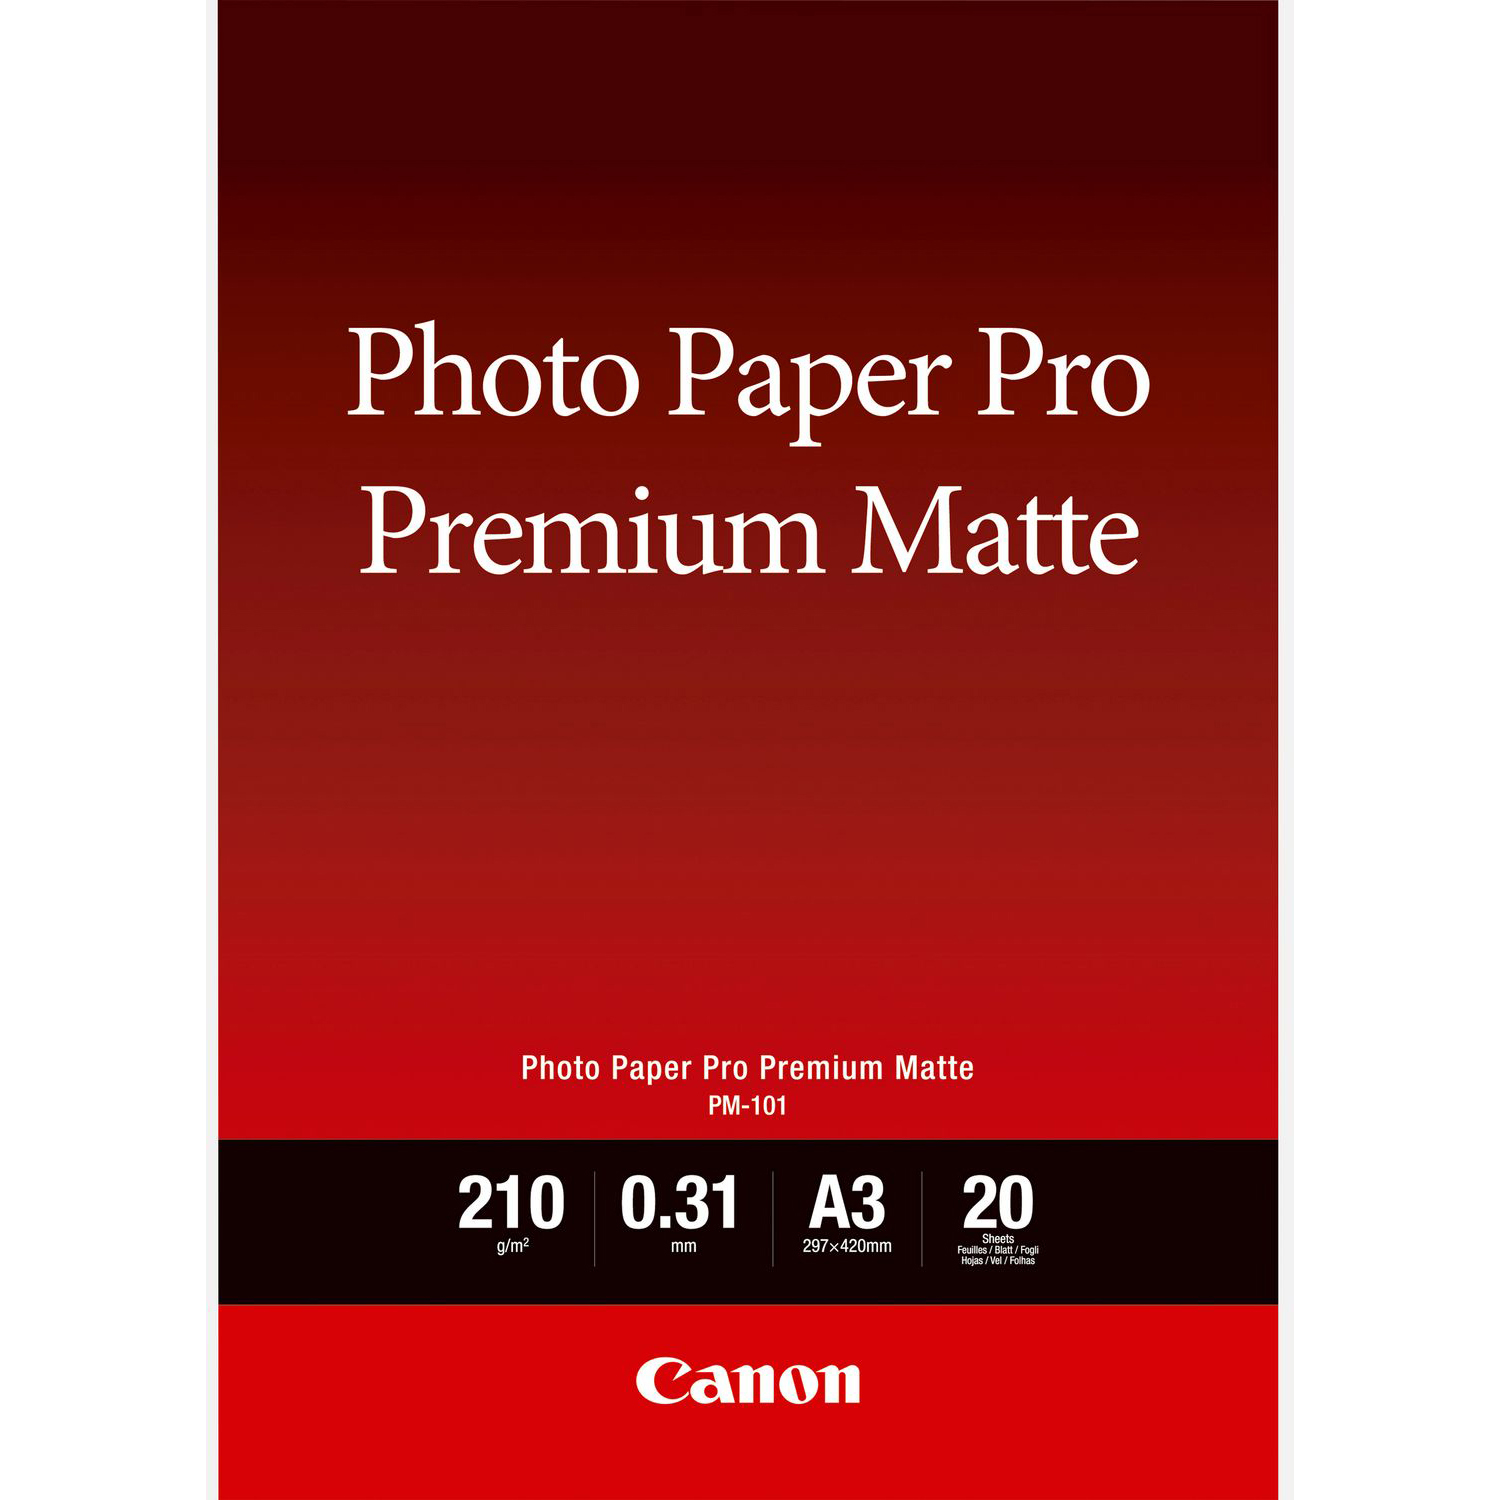 Original Canon PM-101 210gsm A3 Photo Paper - 20 Sheets (8657B006)